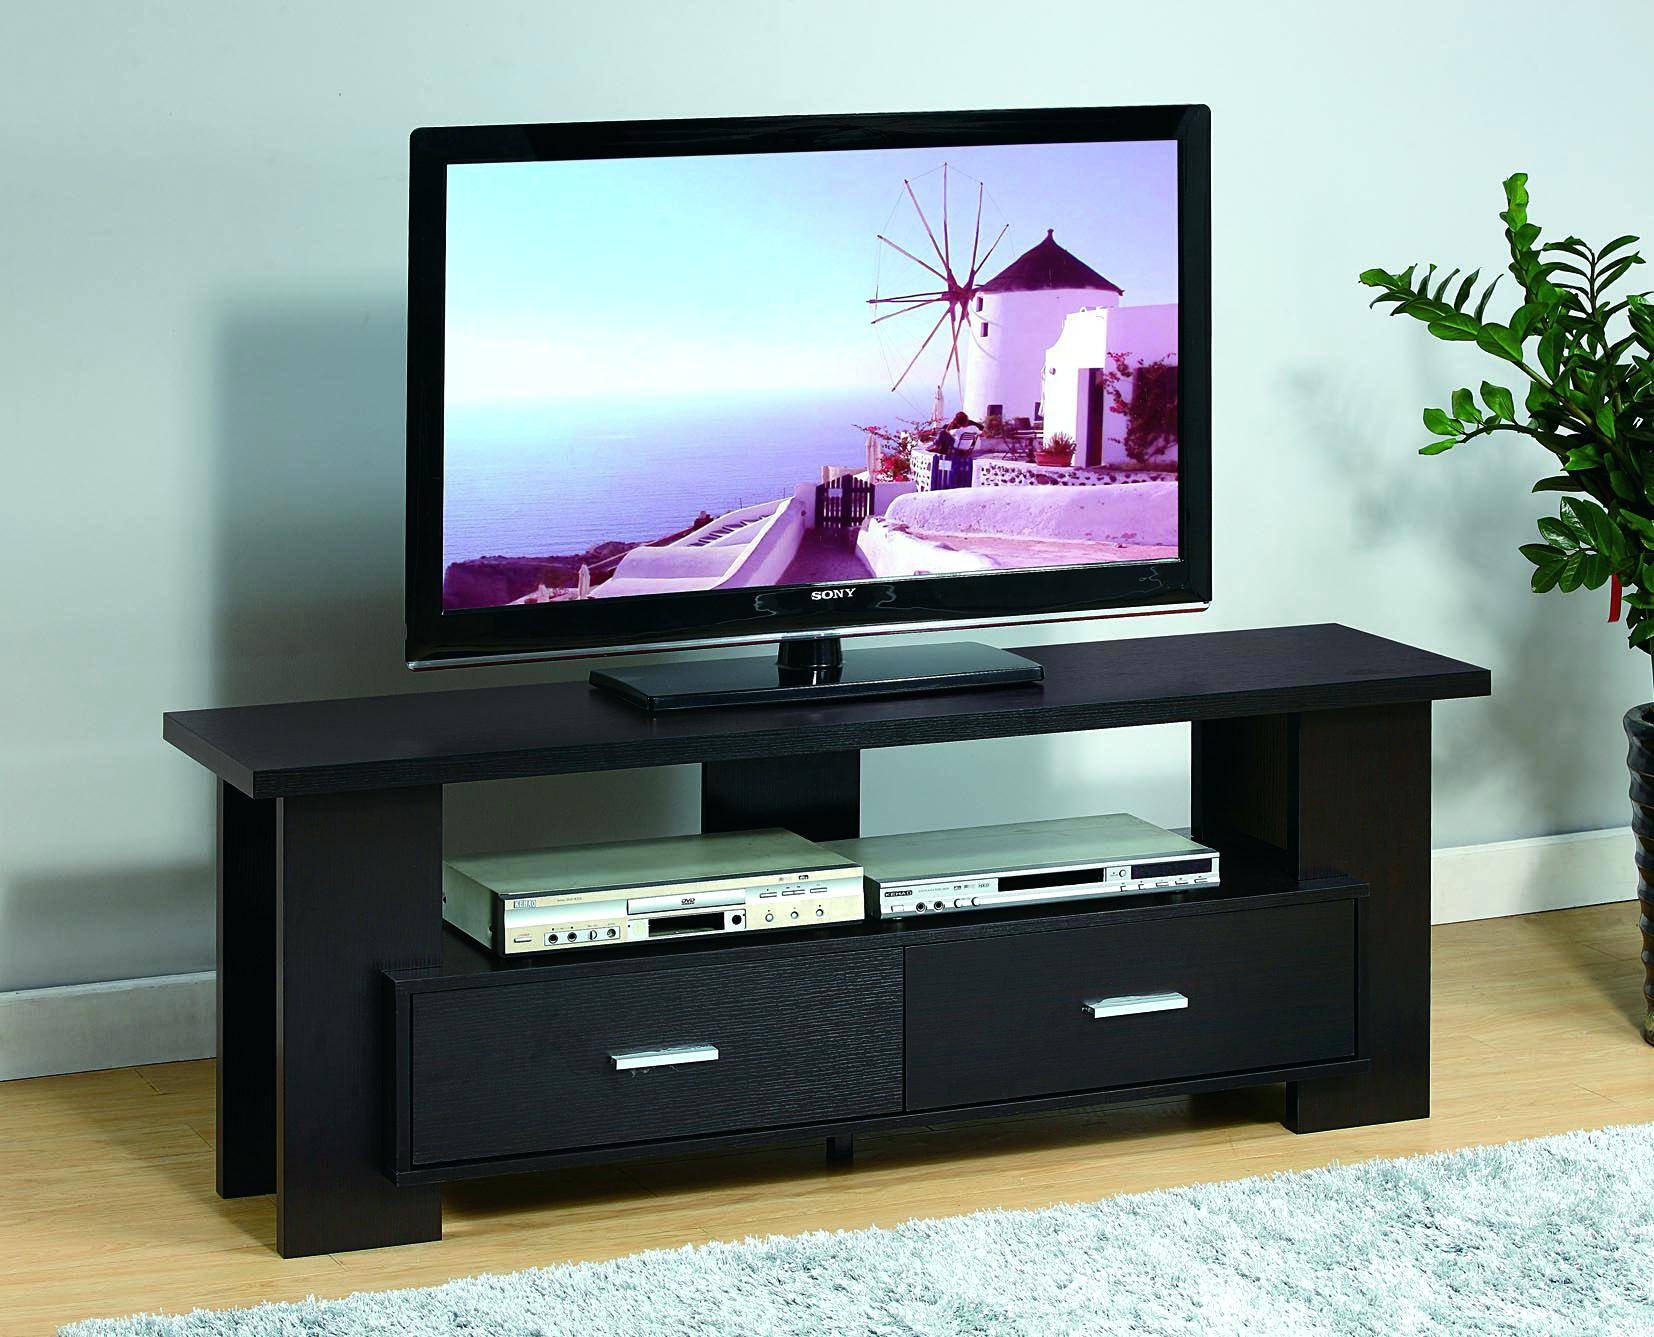 Tv Stand : Corner Tv Console 55 Inch Corner Tv Stand Flat Screen With Regard To Tv Stands 38 Inches Wide (View 4 of 15)